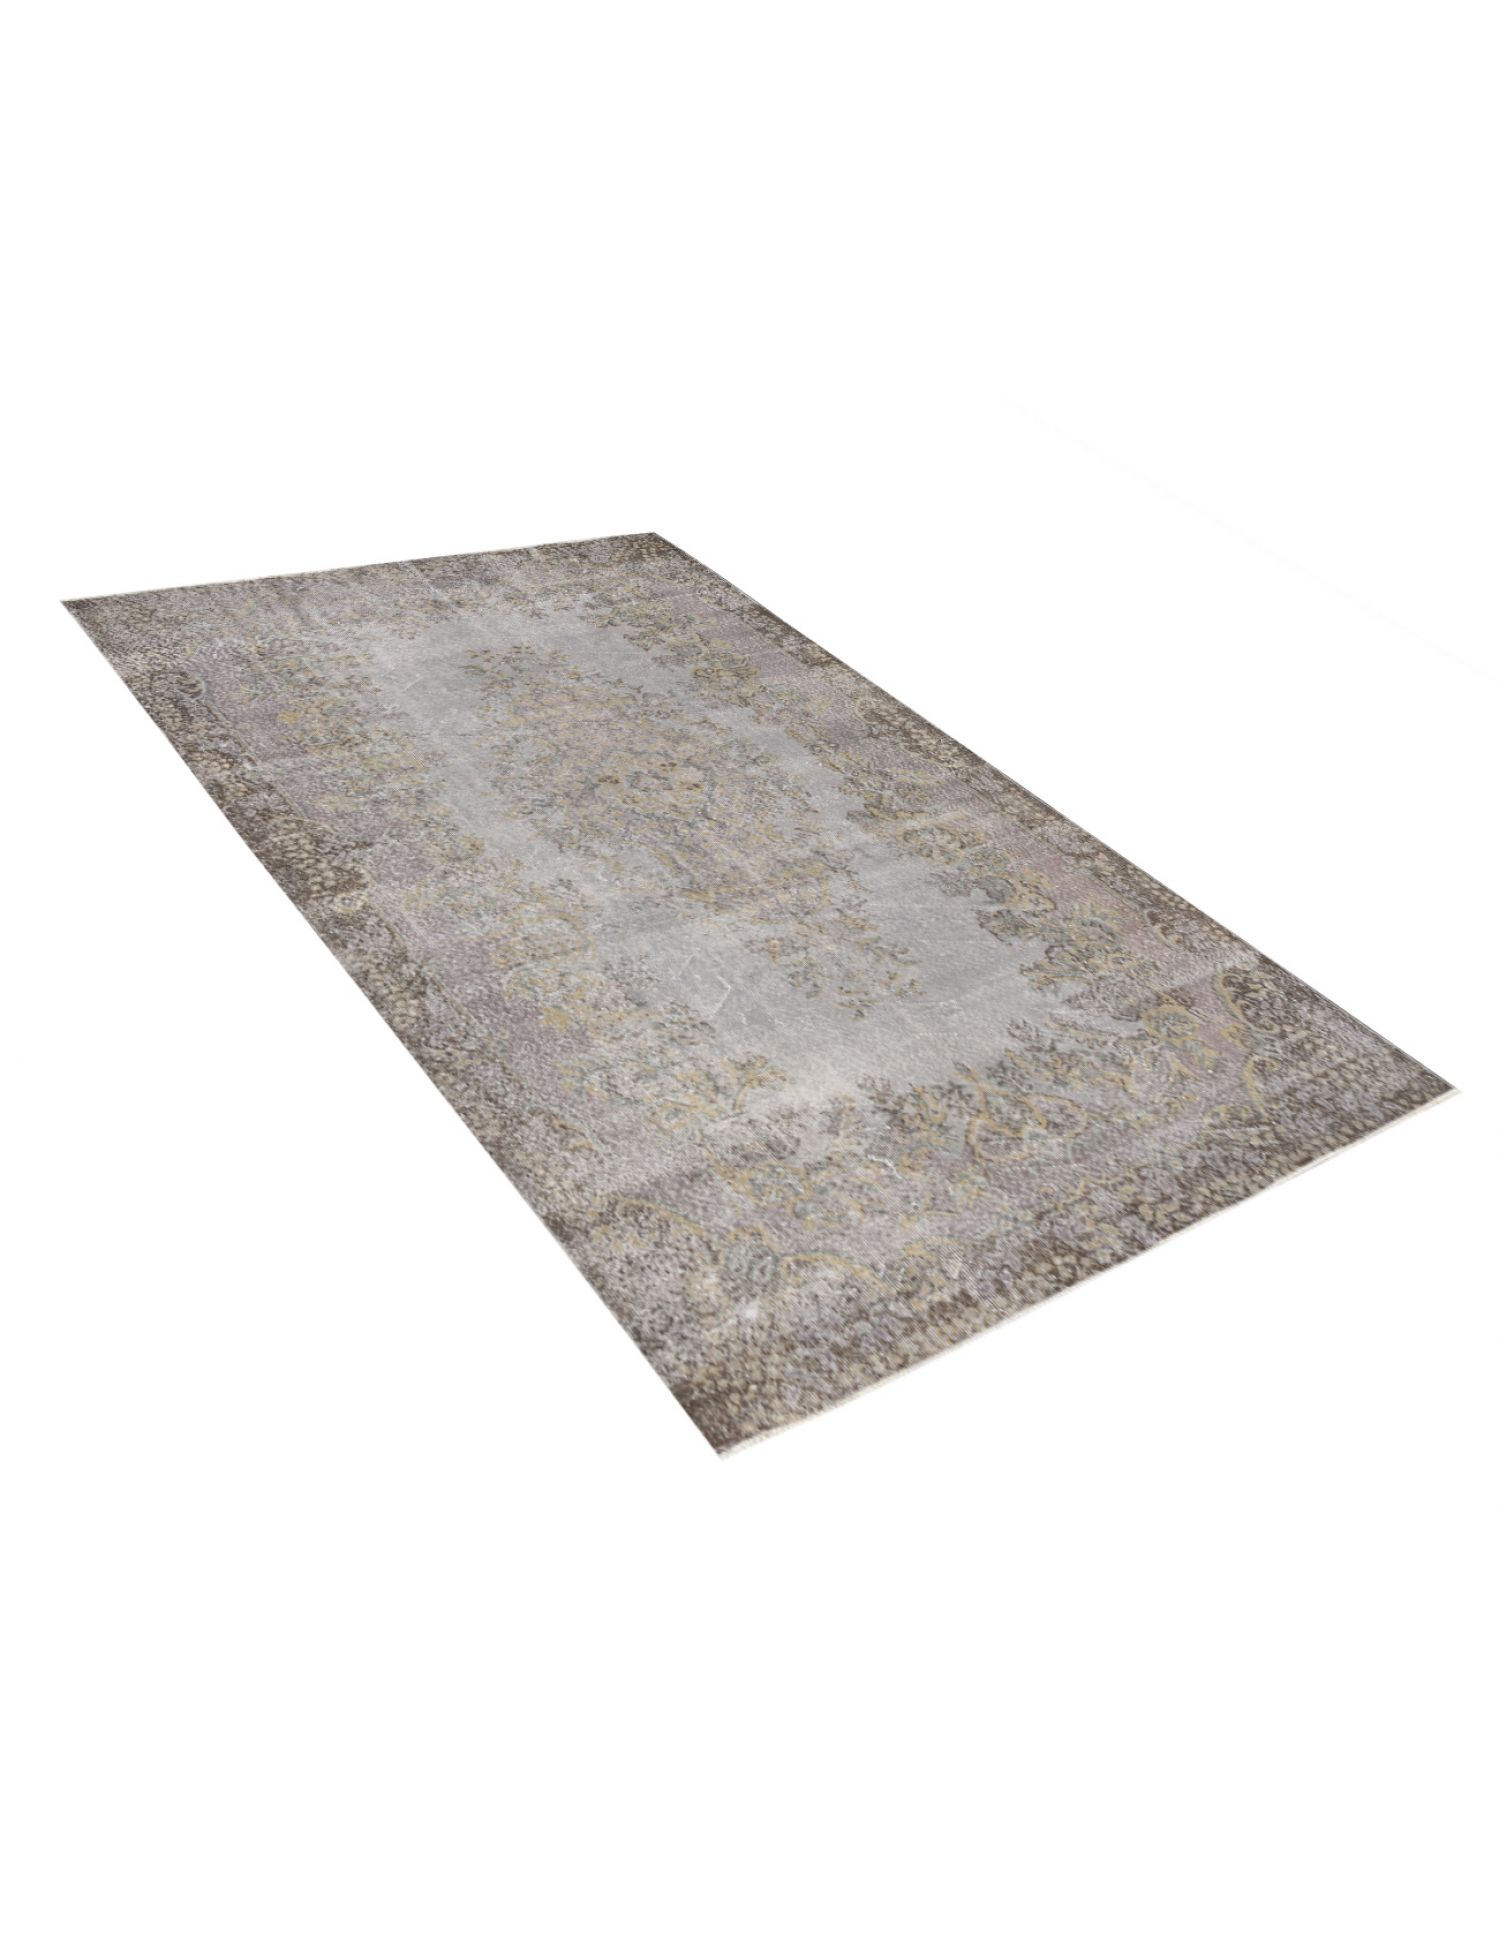 Vintage Carpet  grey <br/>308 x 179 cm